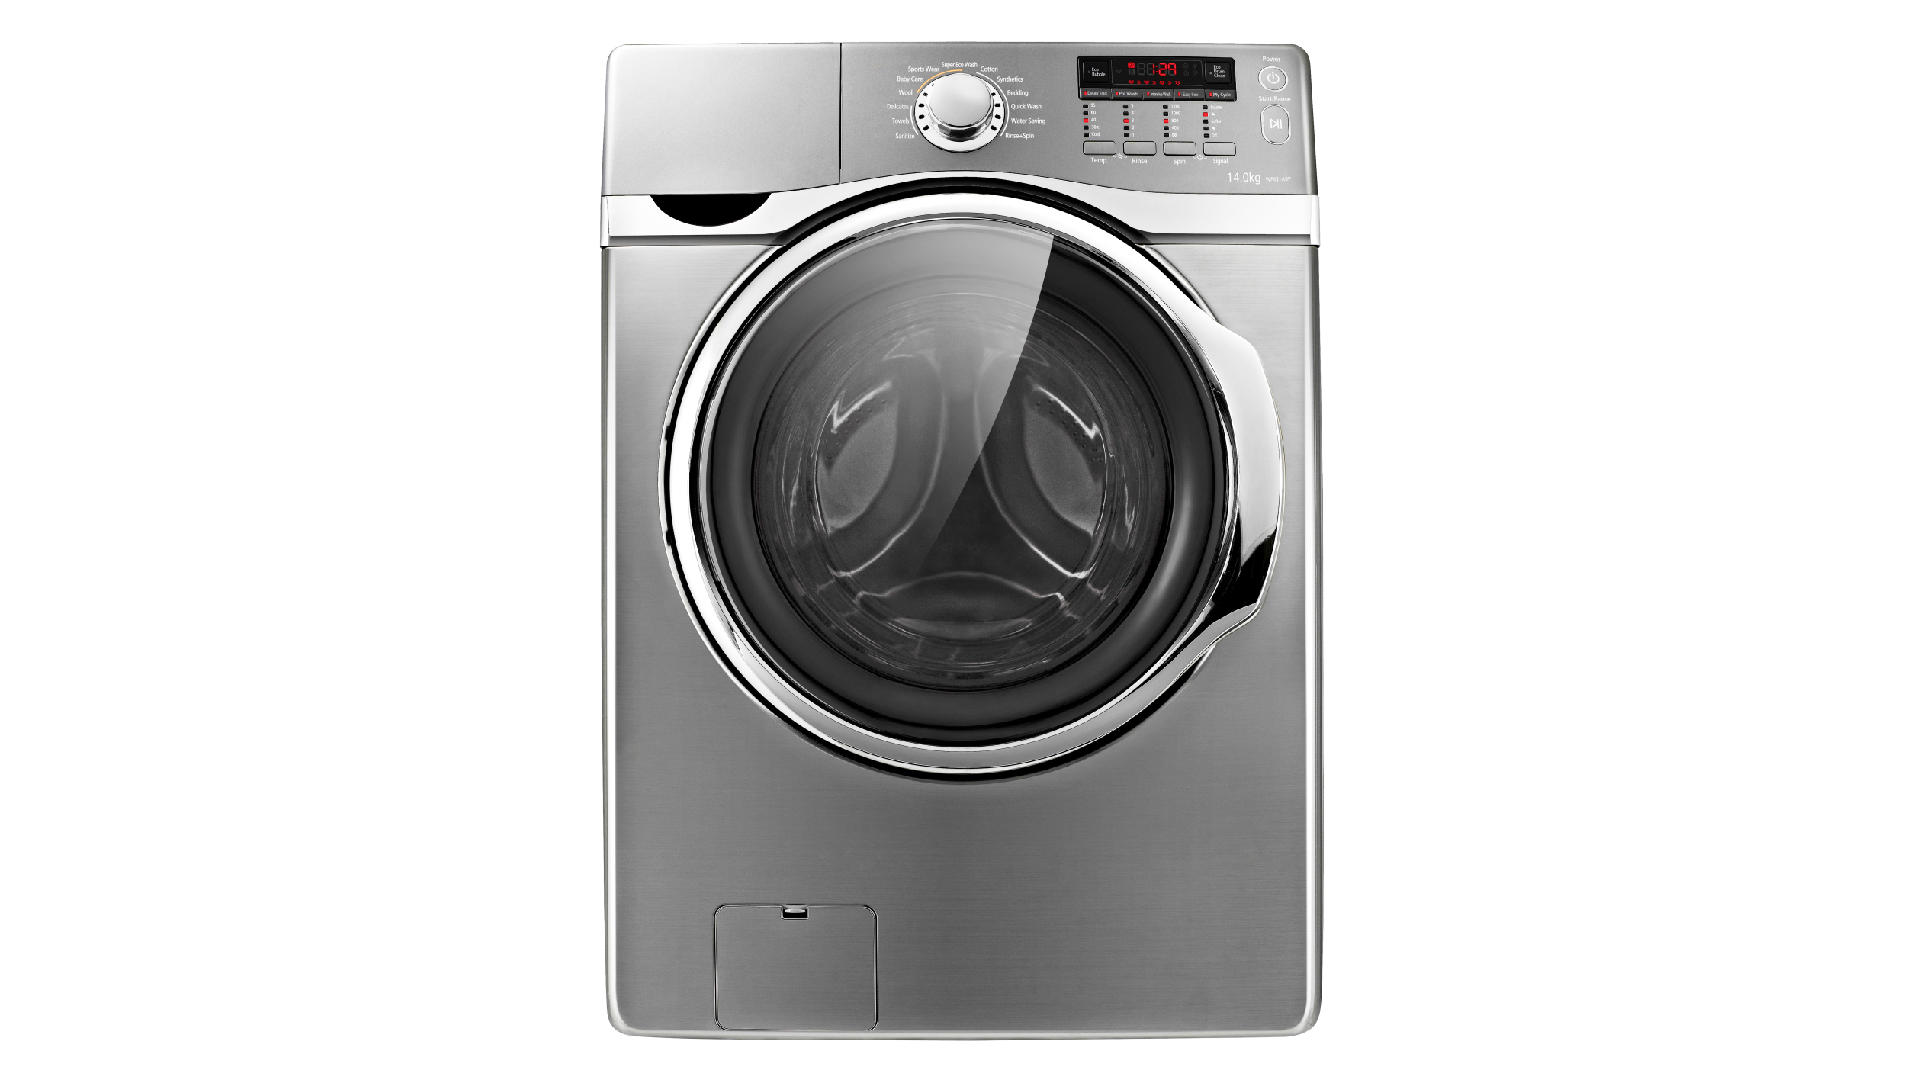 """Featured image for """"Samsung Washer 4E Error Code? Here's Why"""""""